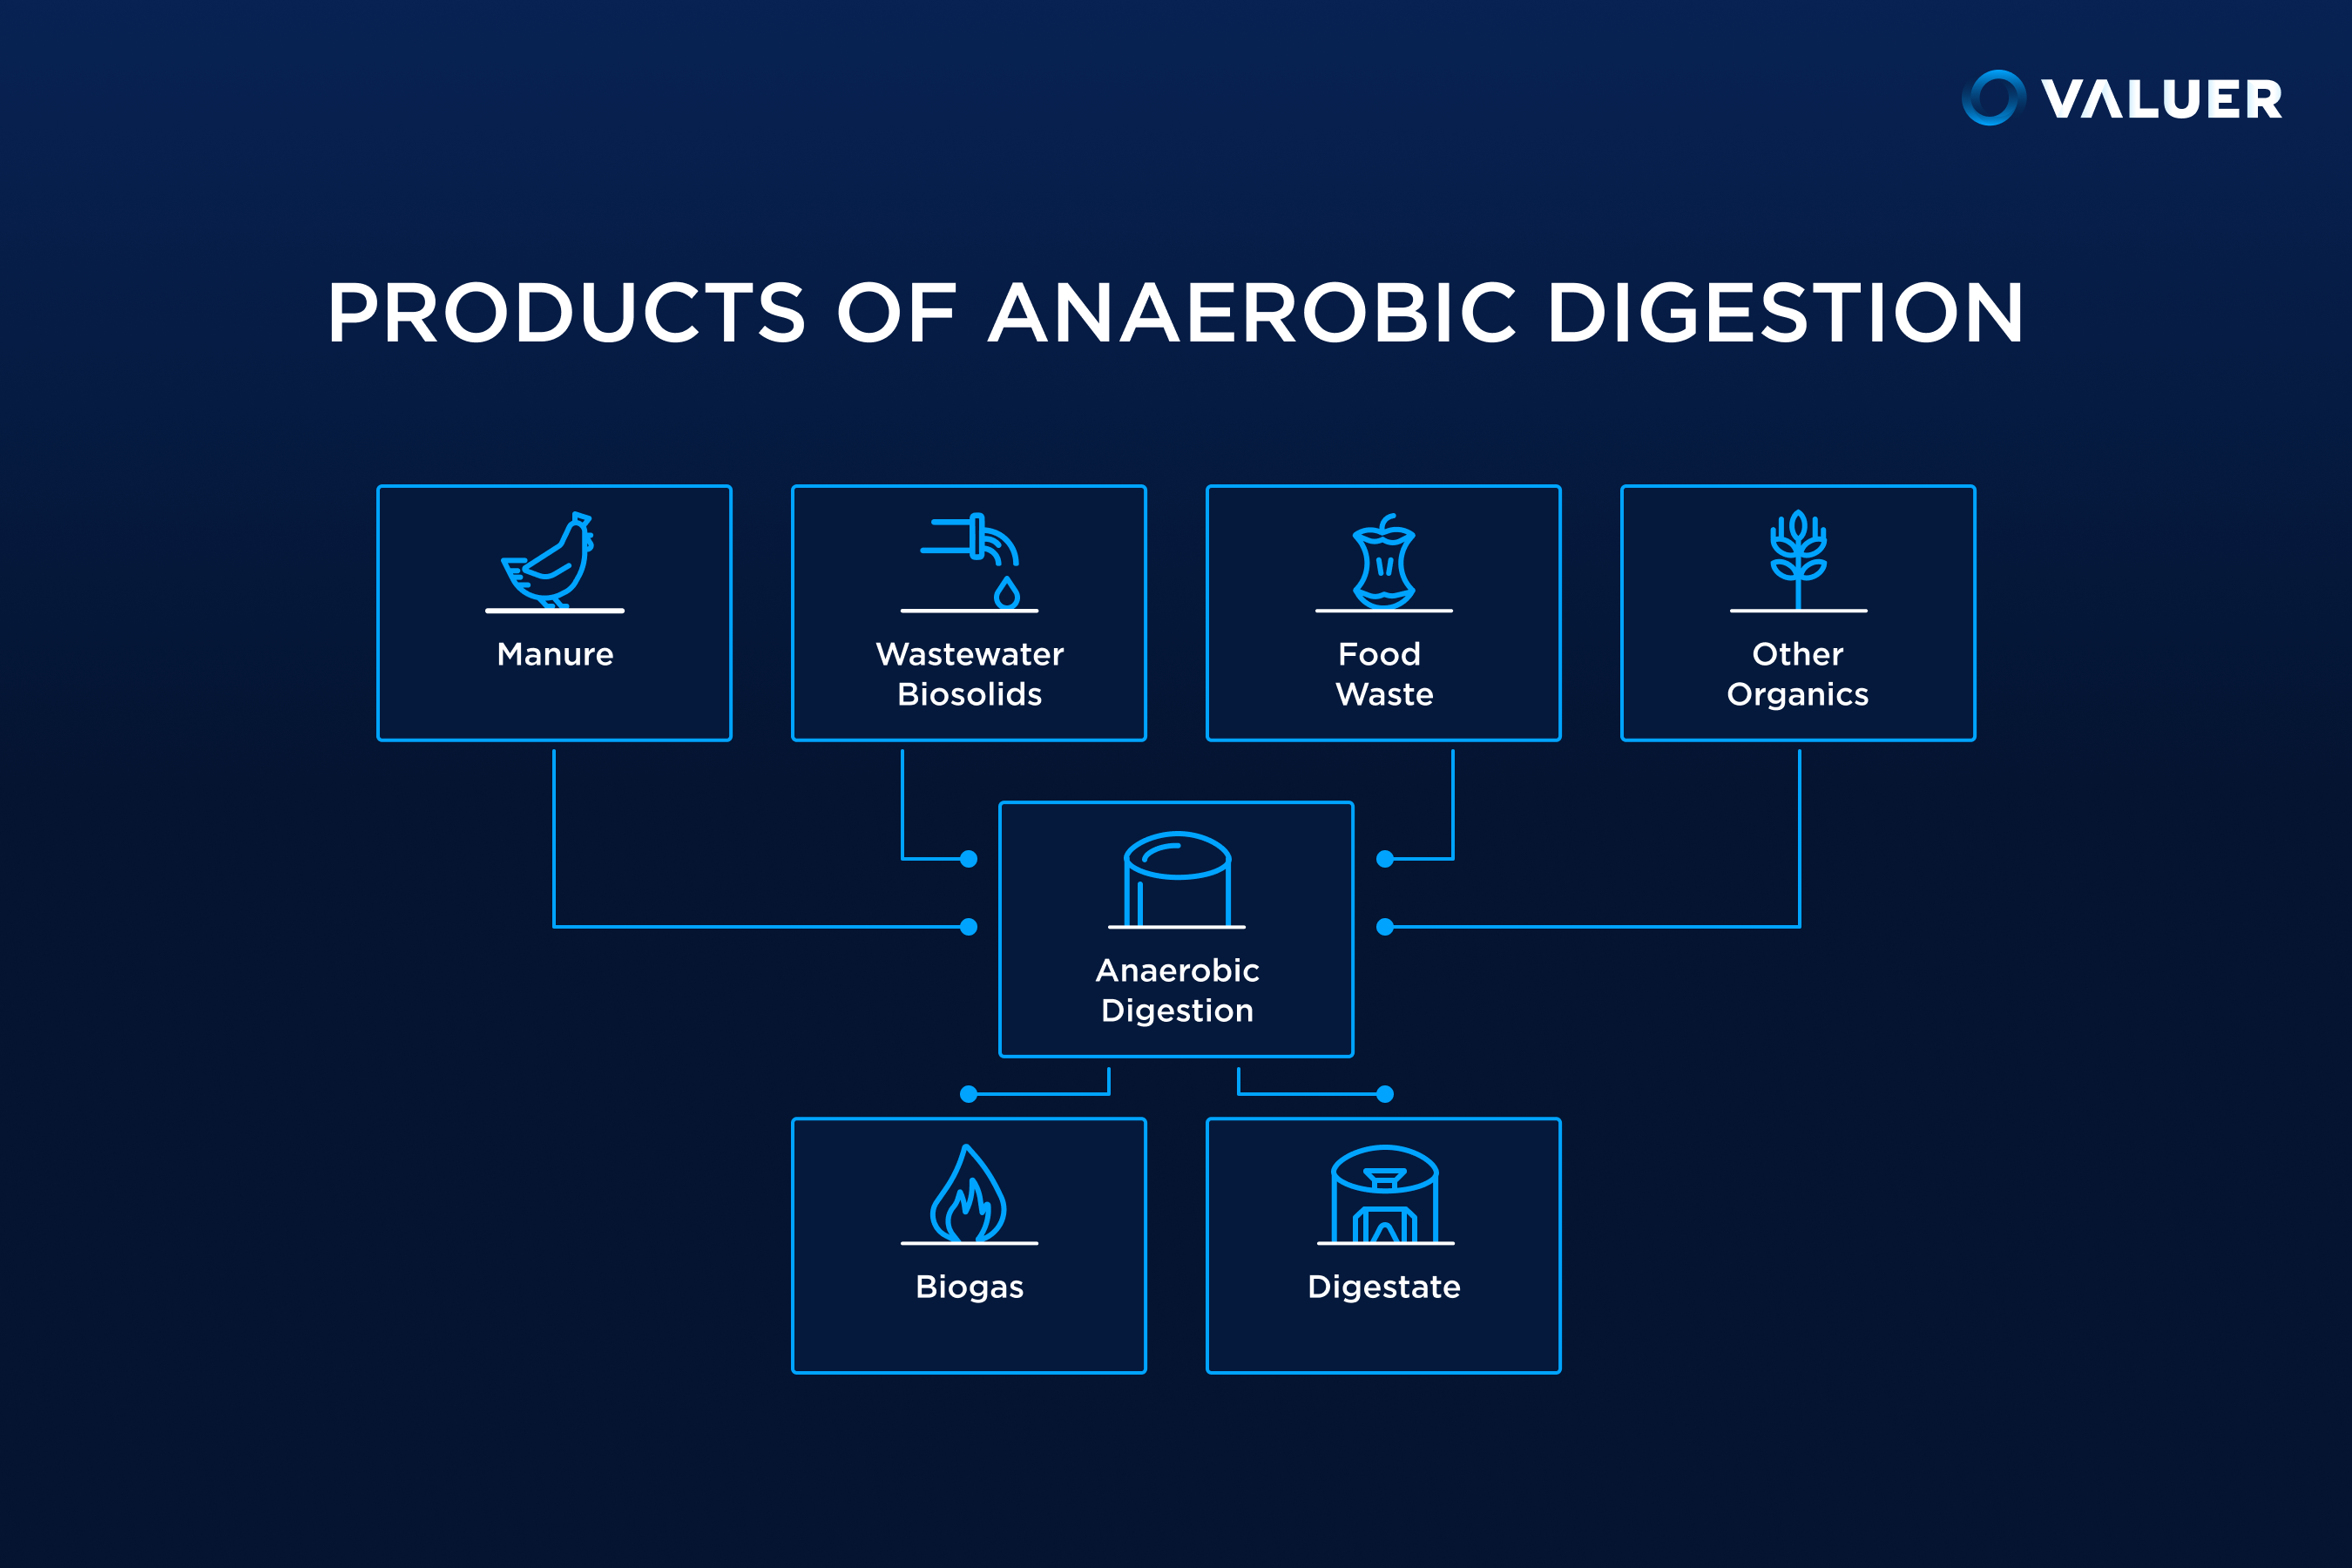 Products of Anaerobic Digestion infographic